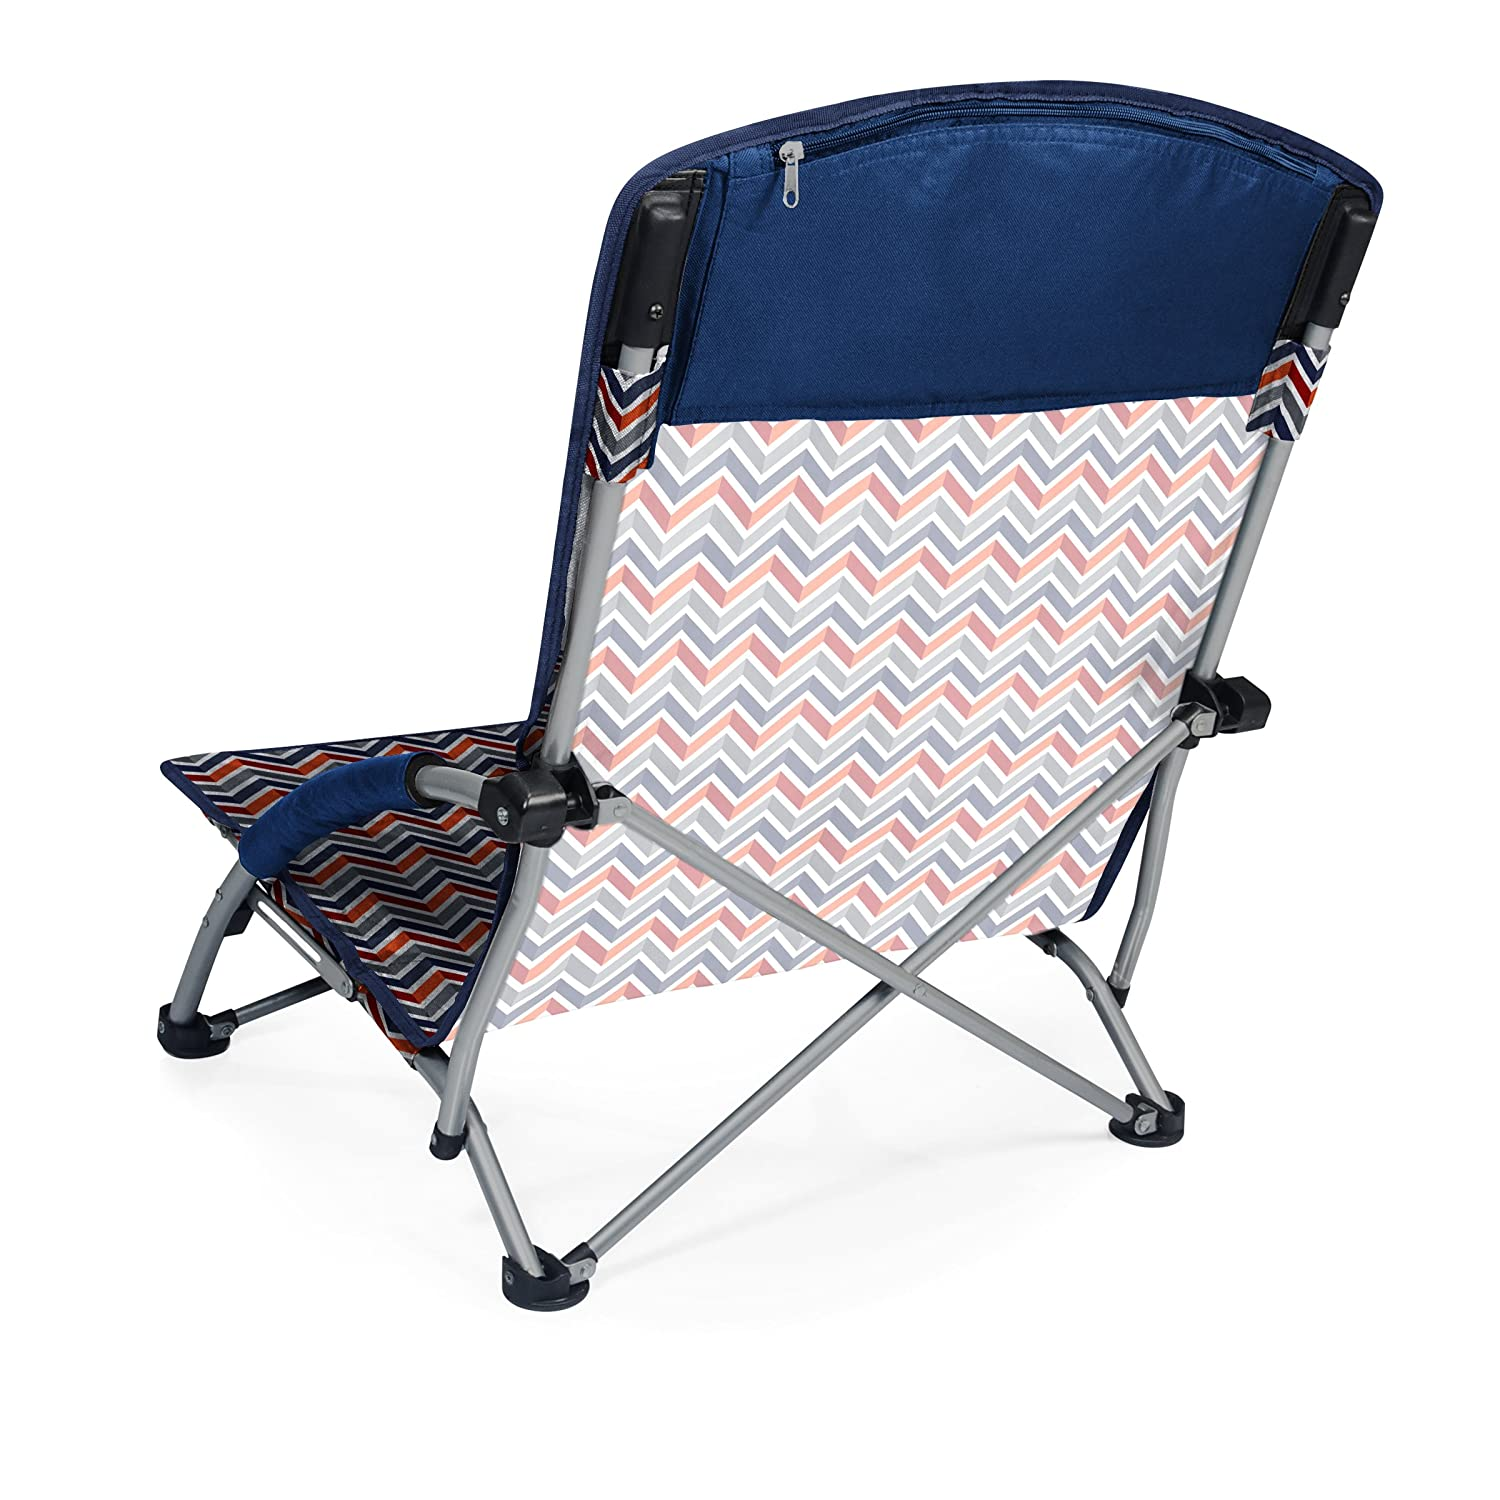 Amazon.com  Picnic Time Tranquility Portable Folding Beach Chair Vibe Collection  Garden u0026 Outdoor  sc 1 st  Amazon.com & Amazon.com : Picnic Time Tranquility Portable Folding Beach Chair ... islam-shia.org